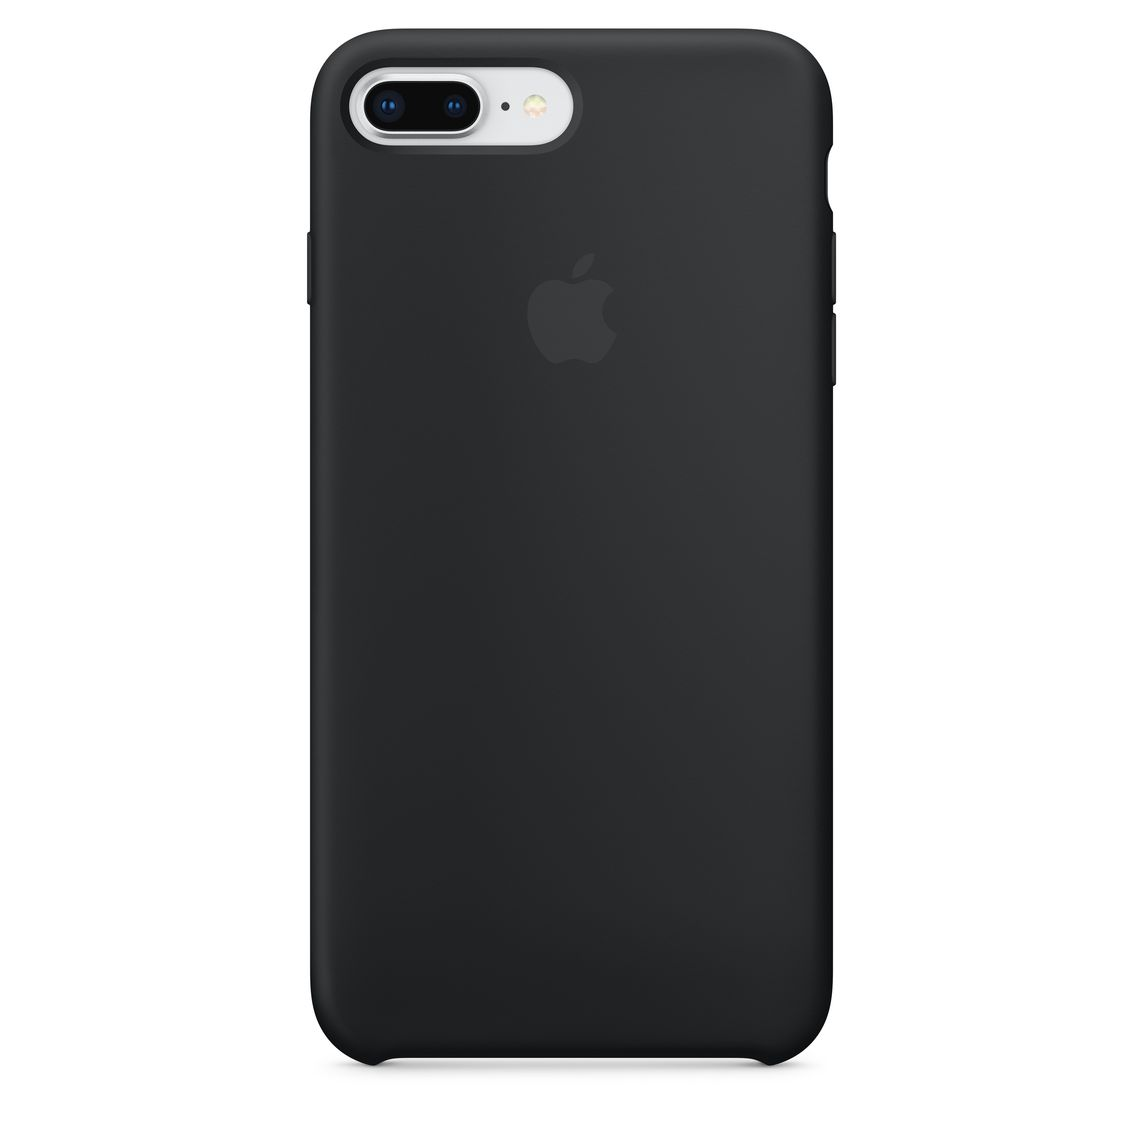 new product de4f7 09643 iPhone 8 Plus / 7 Plus Silicone Case - Black